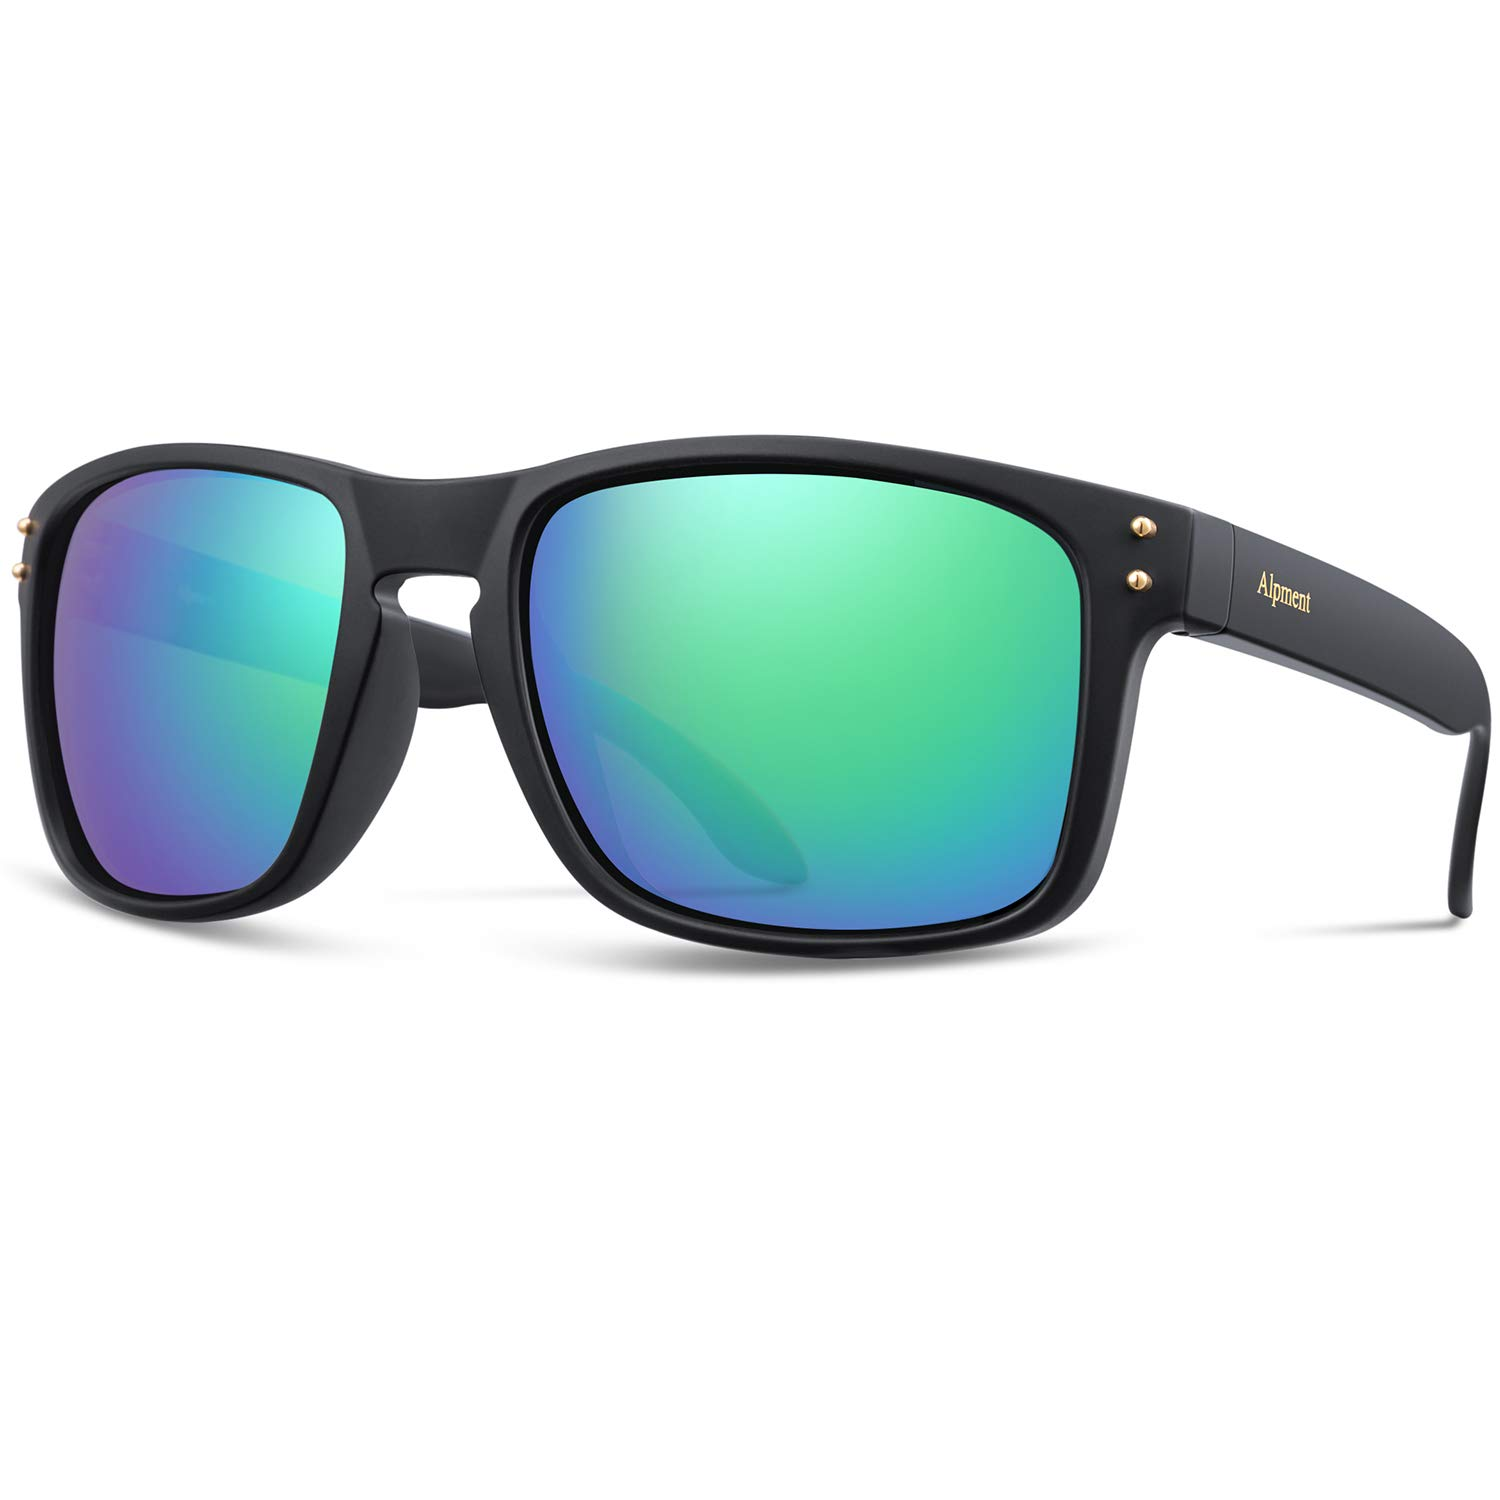 Matte Black&green Alpment HD Polarized Sunglasses Lightweight Only 22g,UV400 Predection Driving Glasses Gift Case Multiple colors Choice